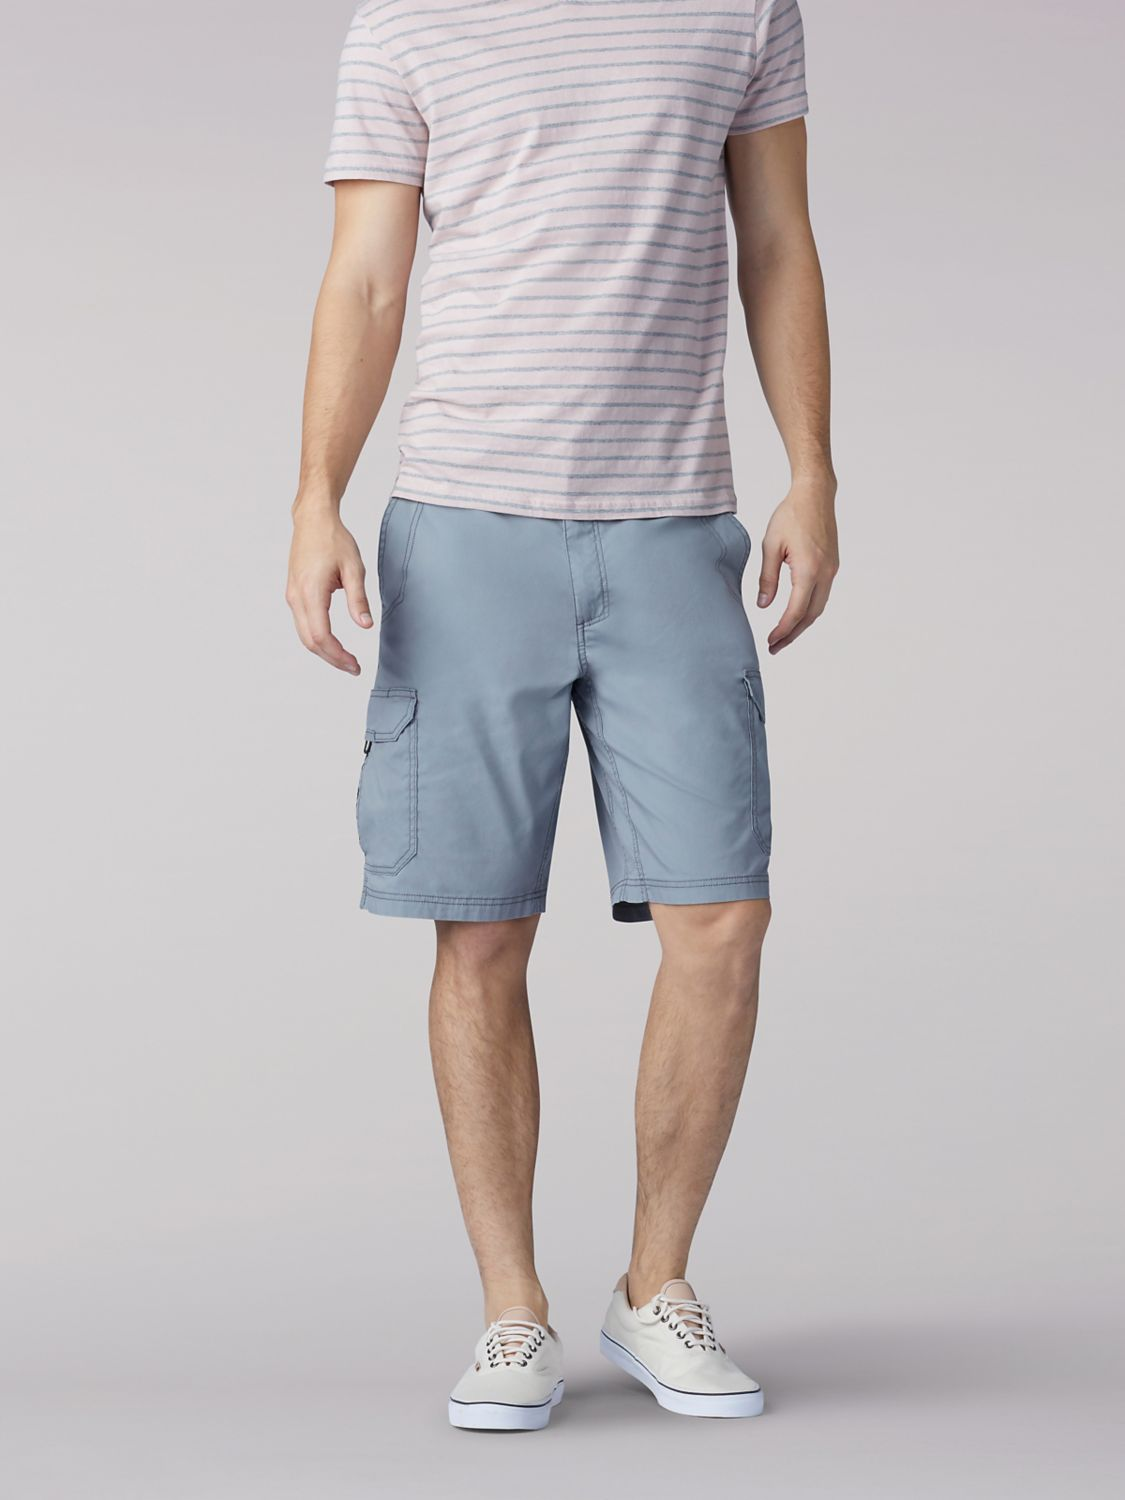 Extreme Motion Crossroad Cargo Short in Storm Grey from Front View